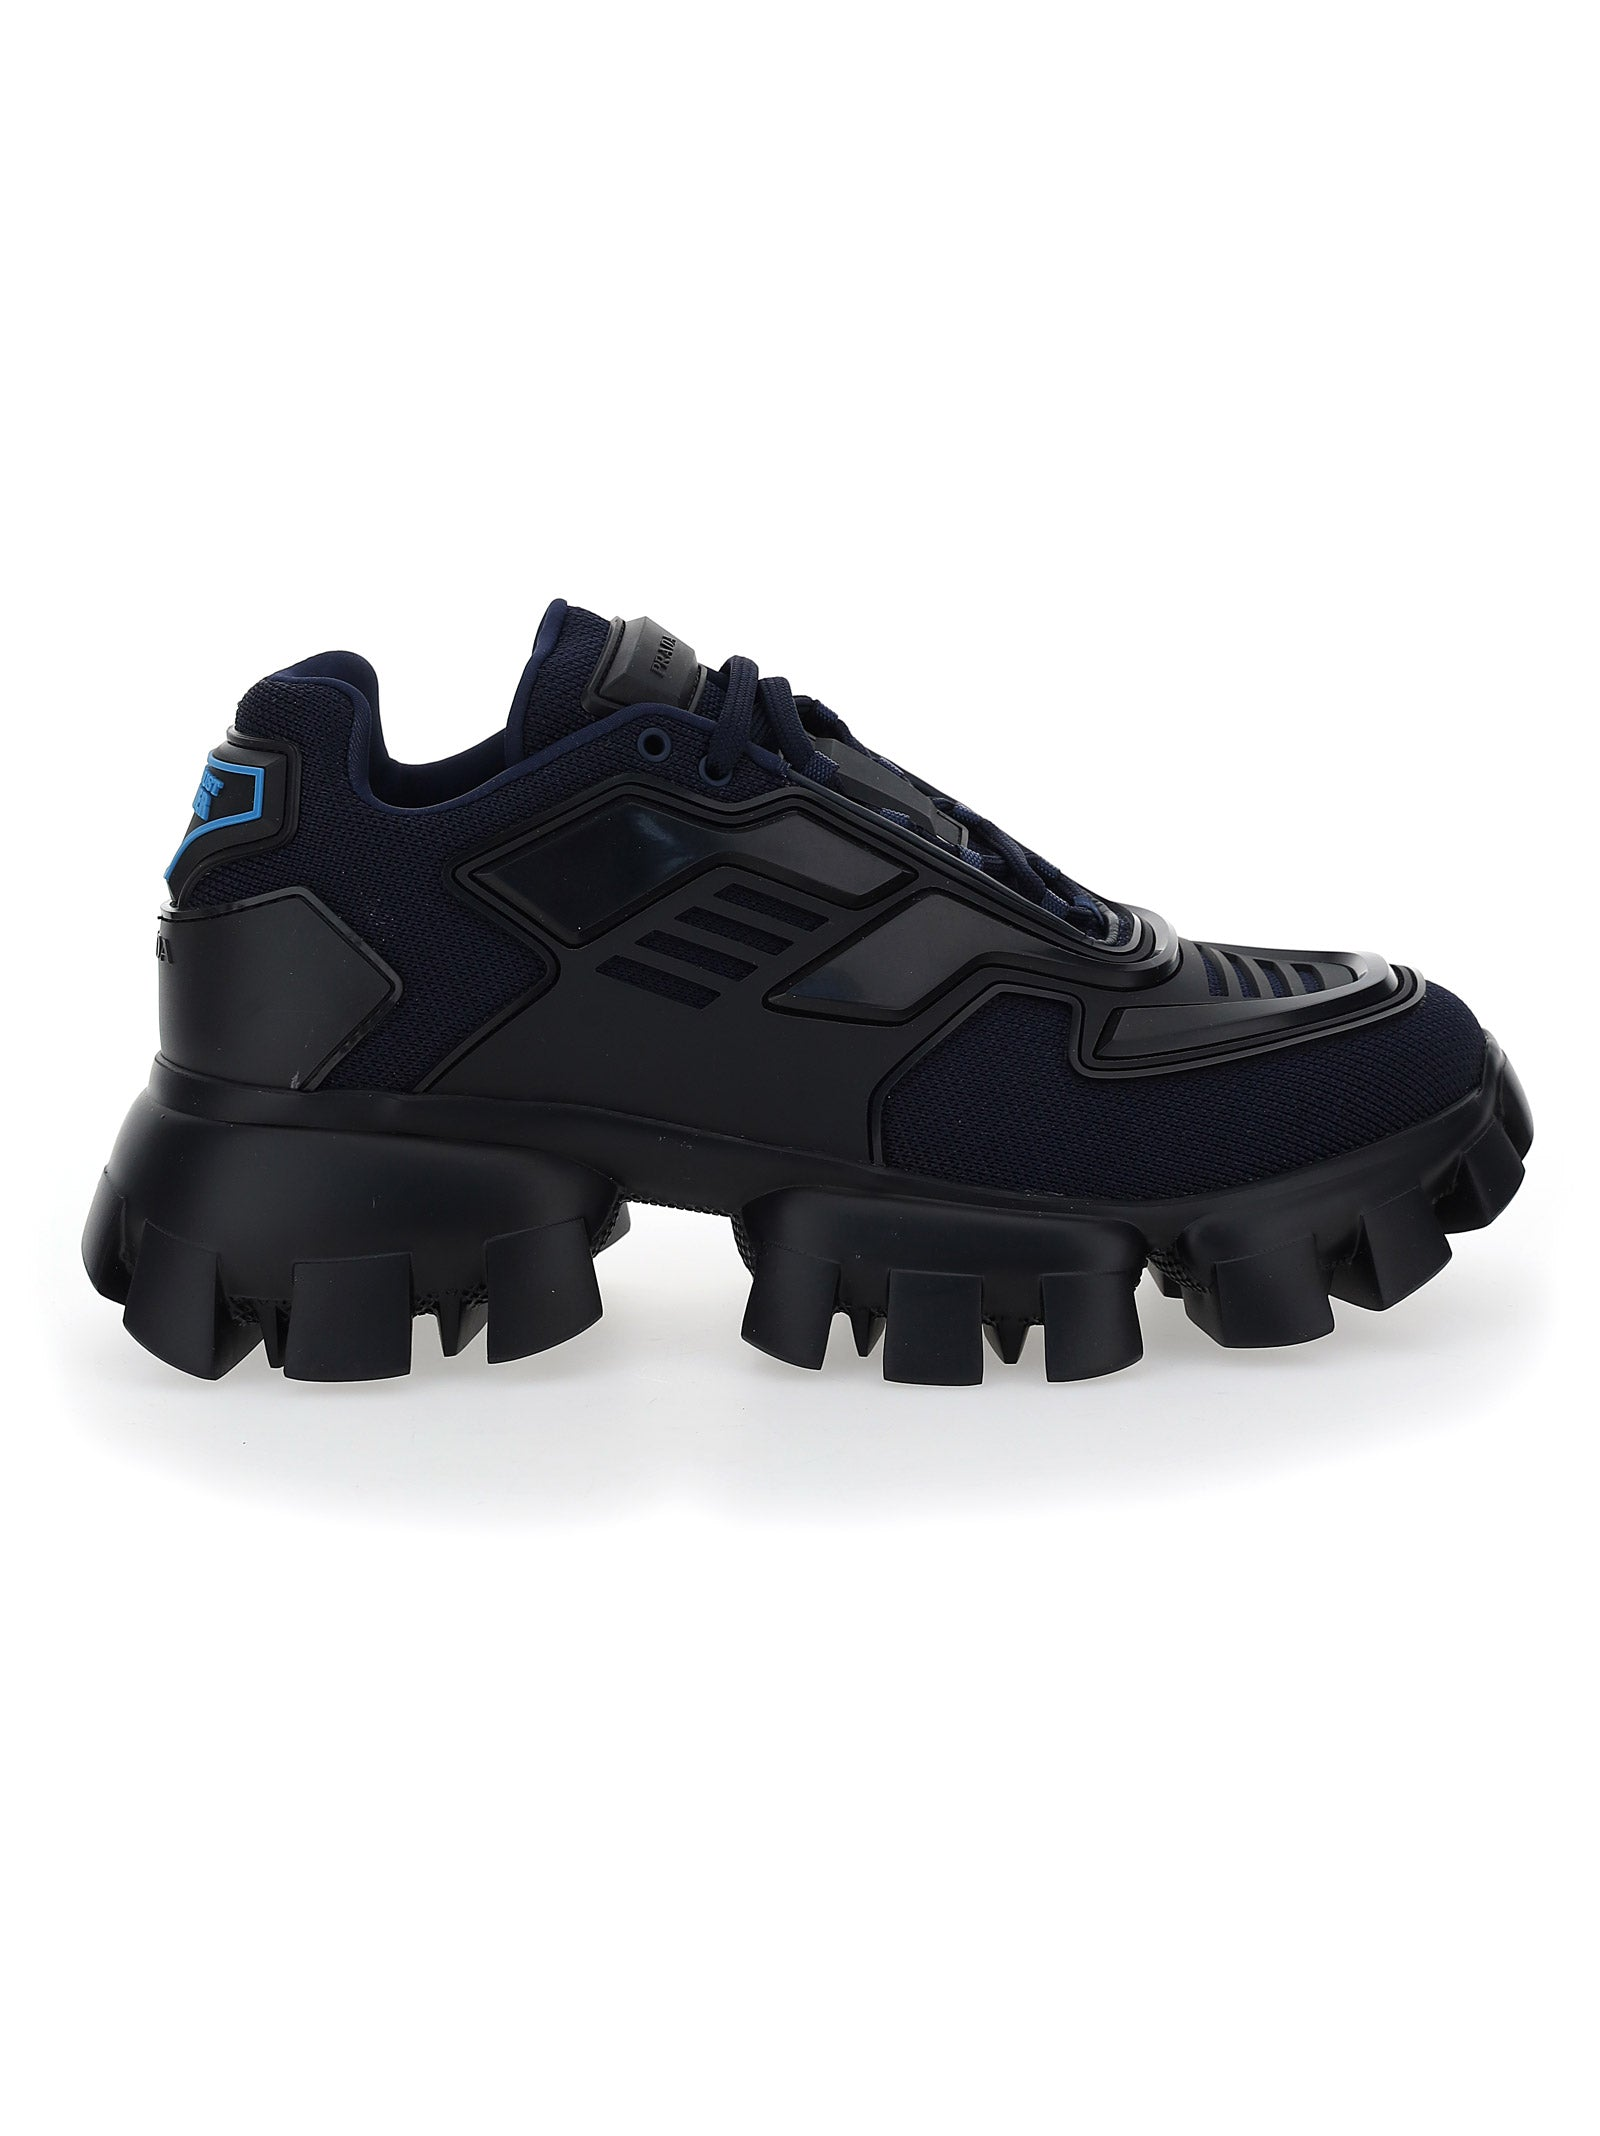 Prada PRADA CLOUDBUST THUNDER SNEAKERS